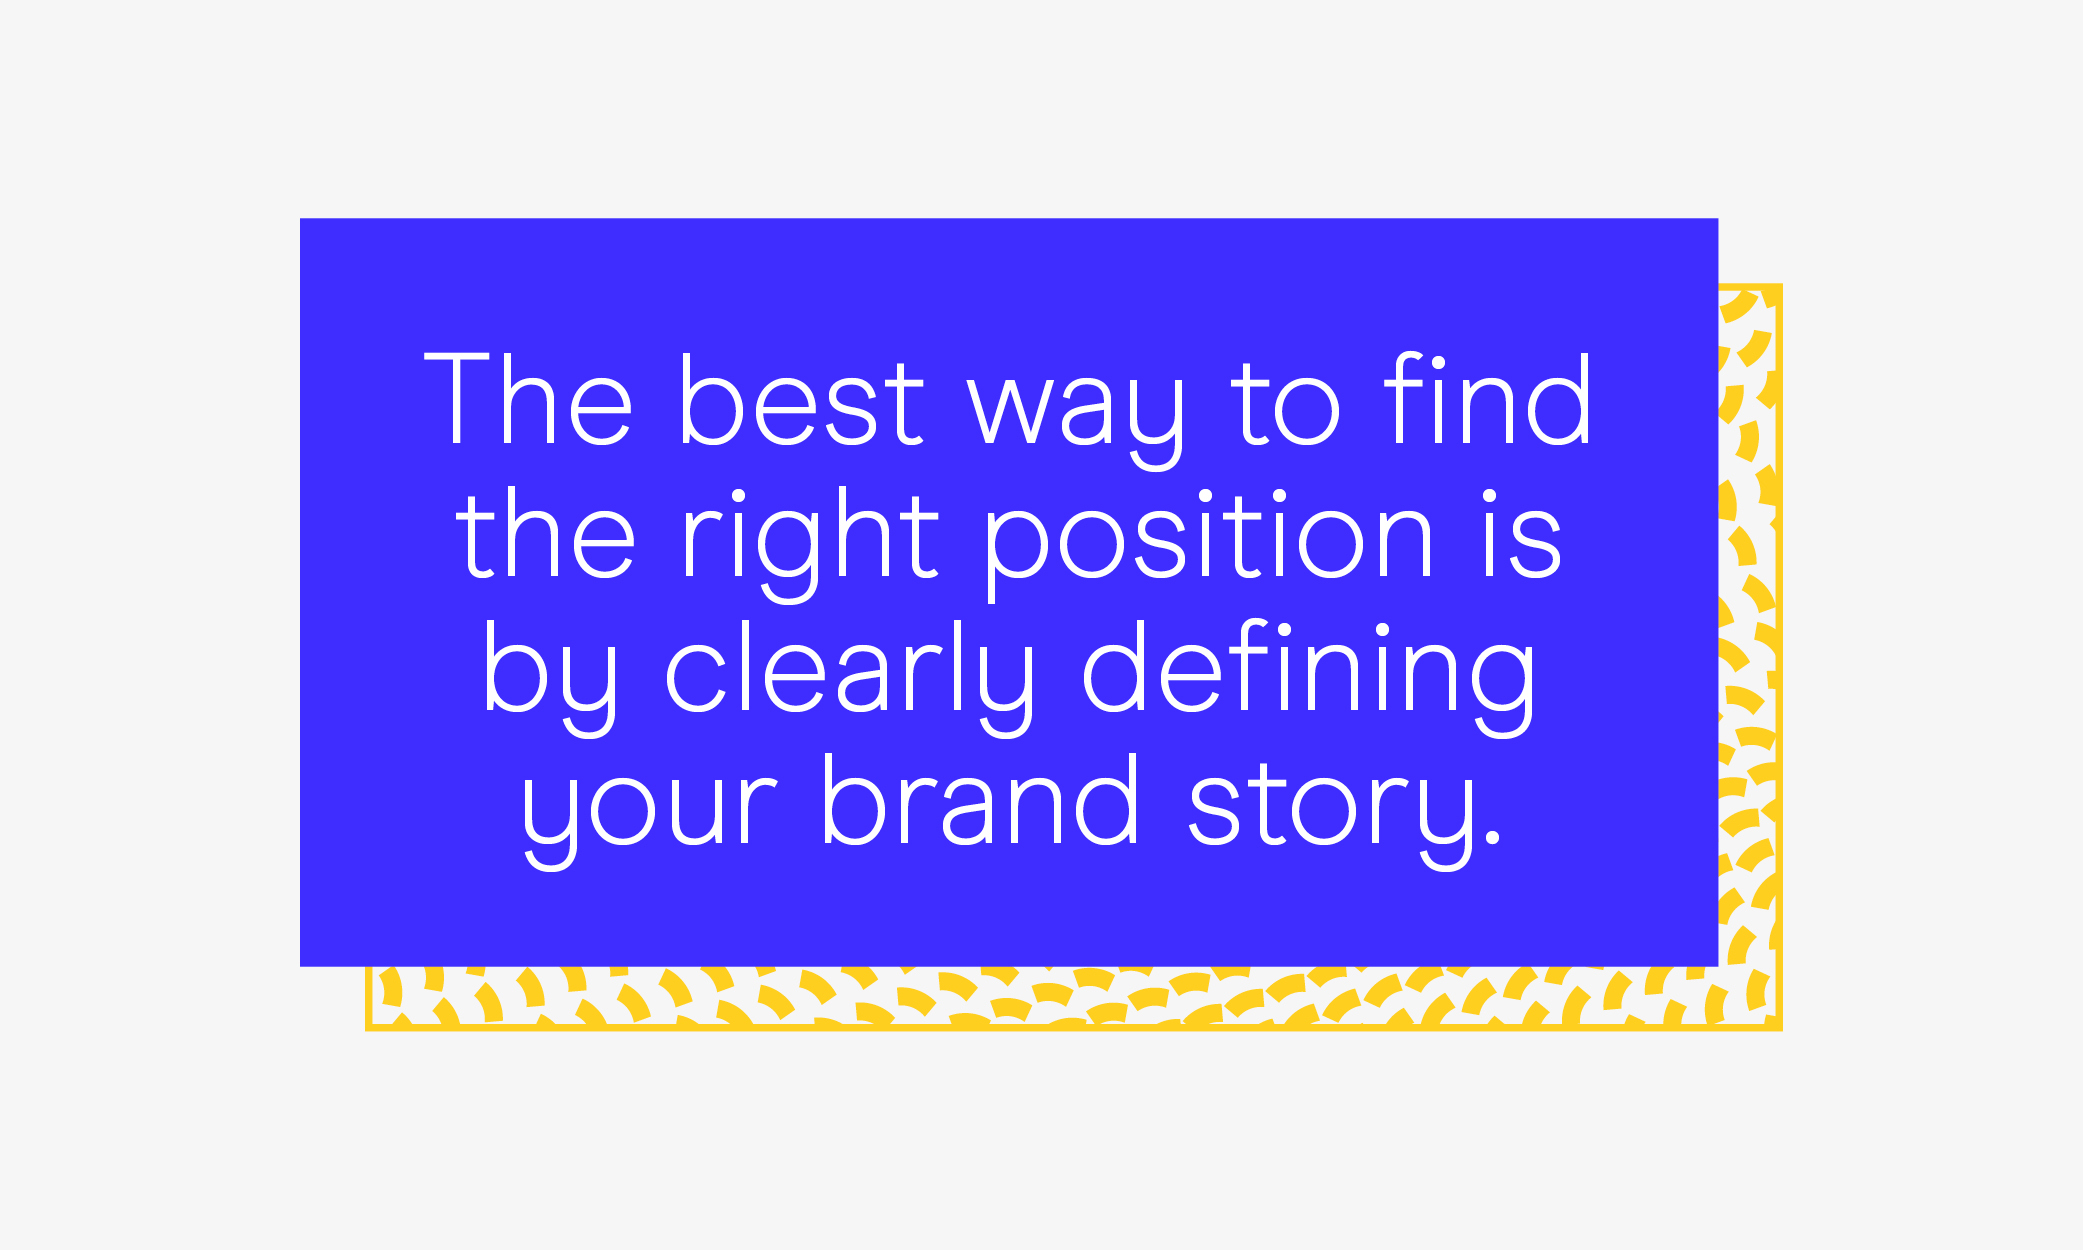 The best way to find the right position is by clearly defining your brand story.